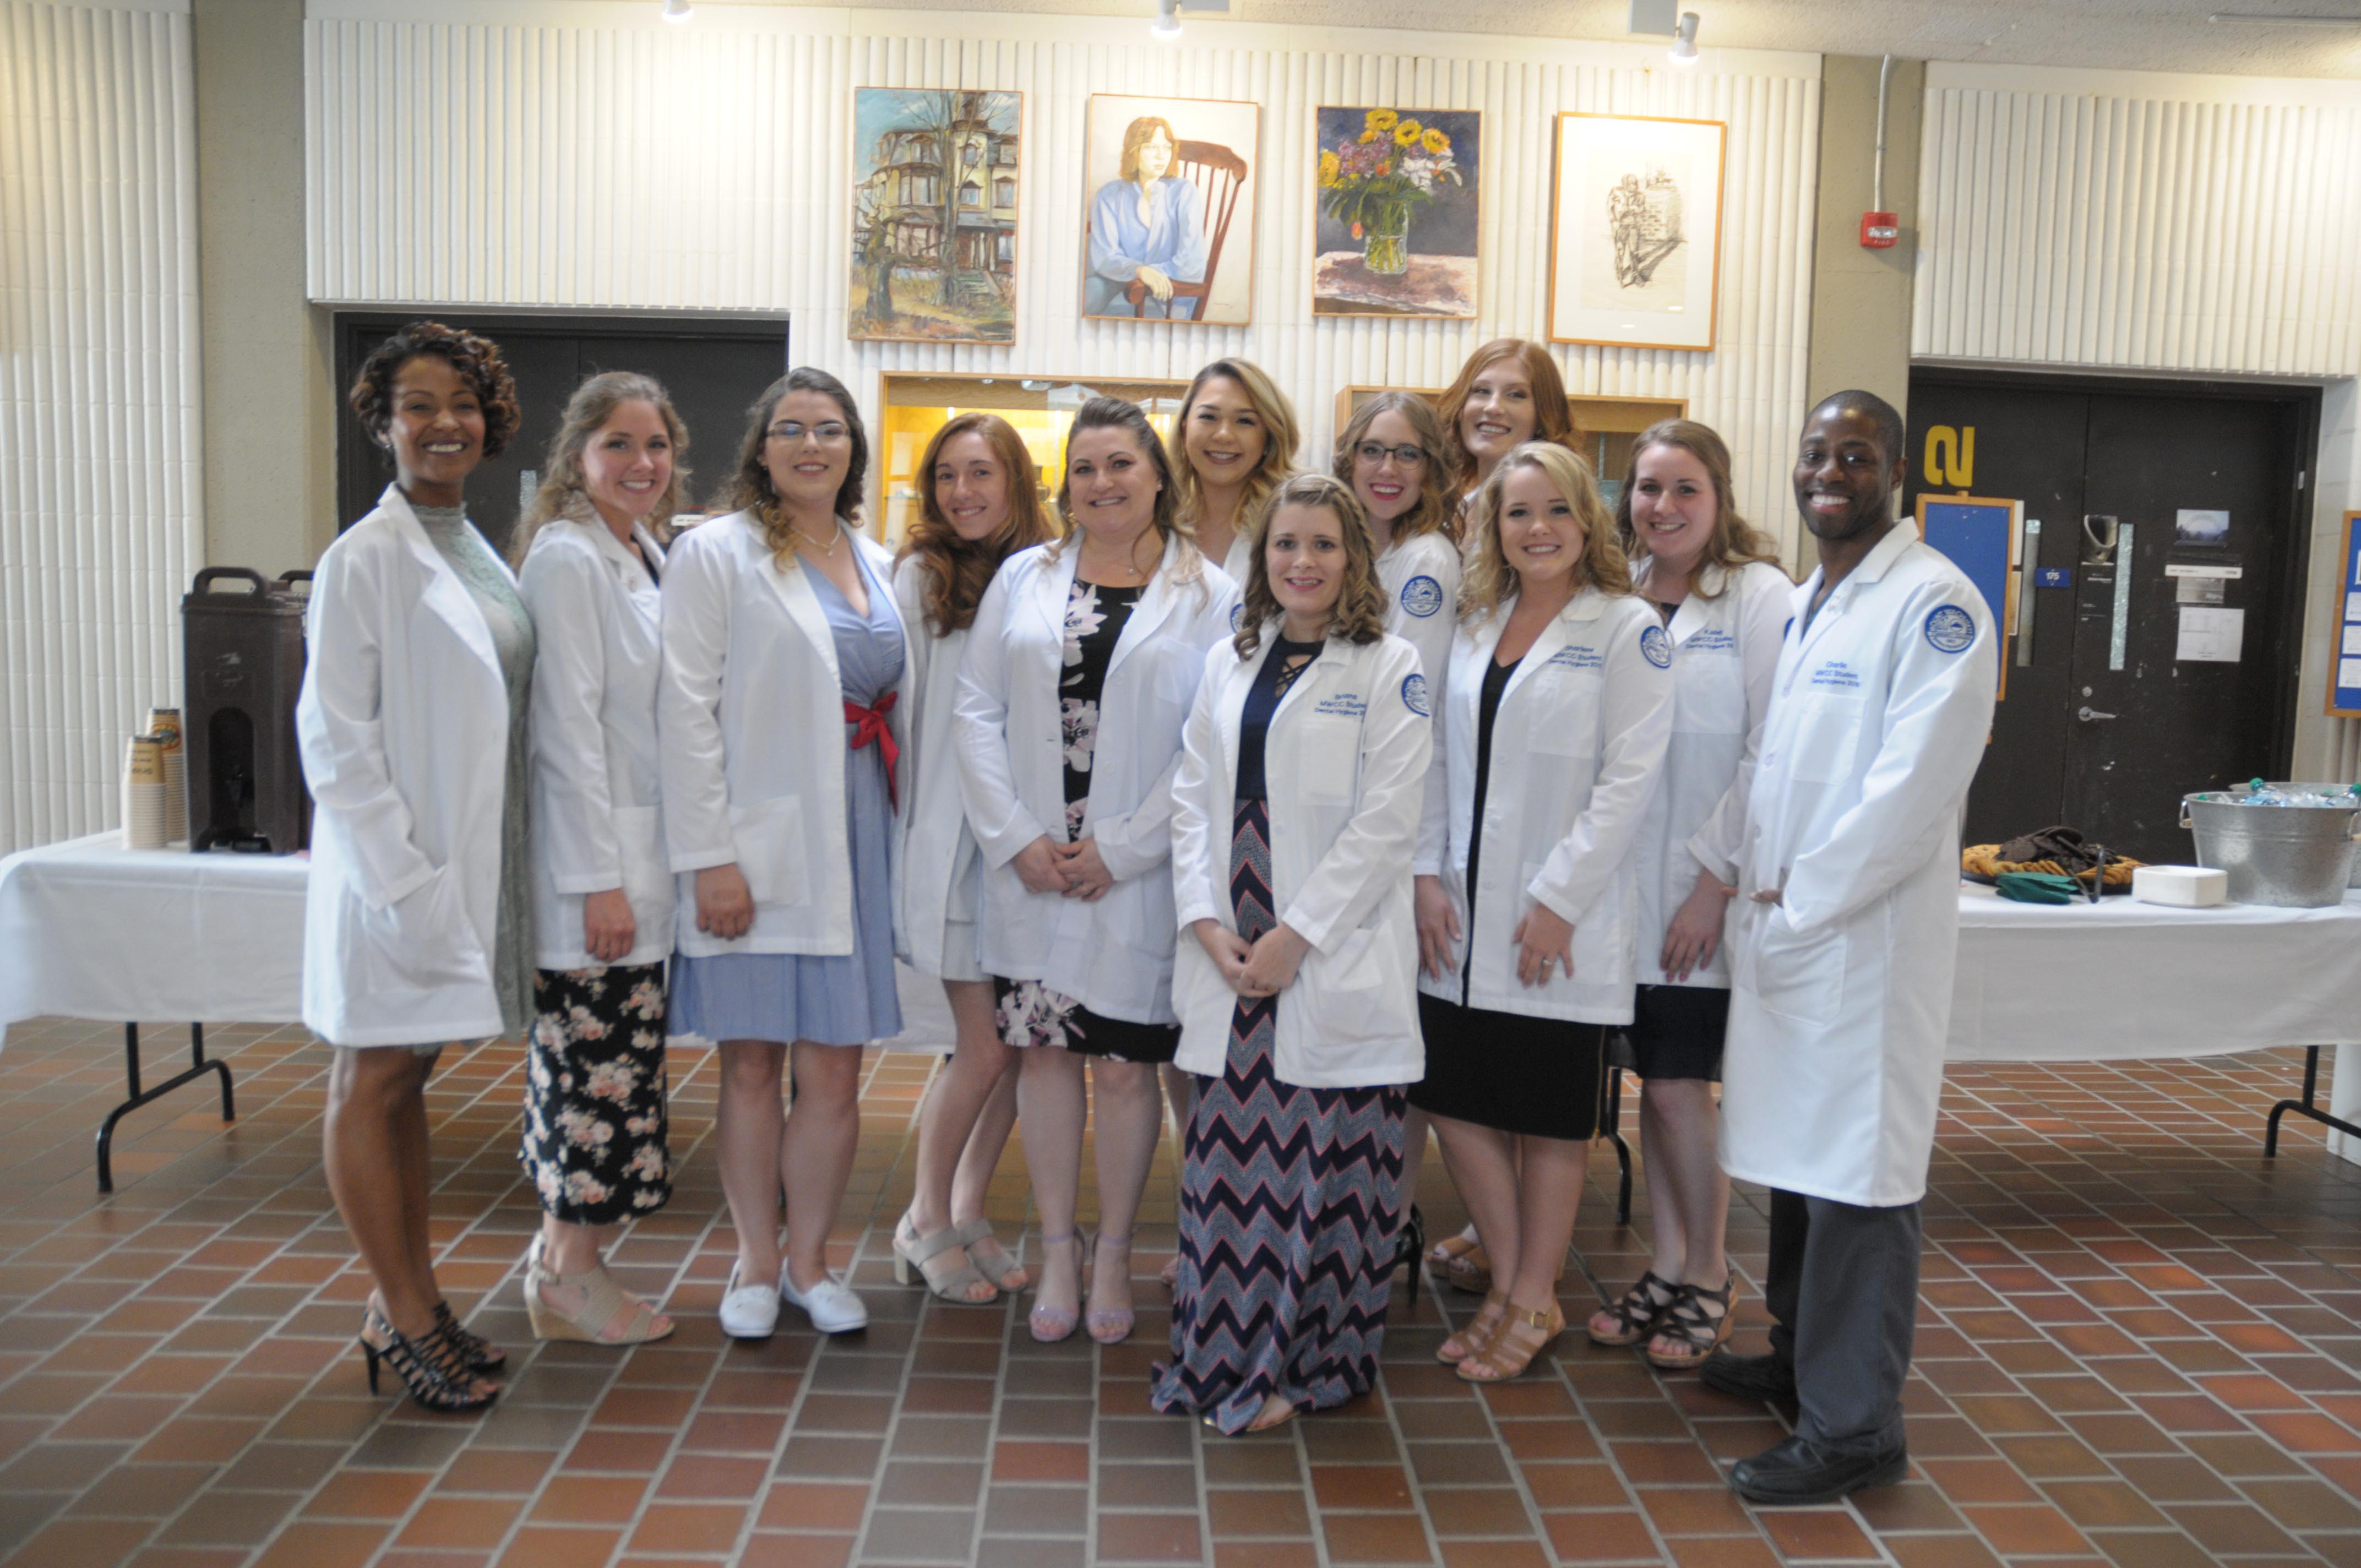 A group of students in white lab coats and nice clothes underneath is lined up for a photo.